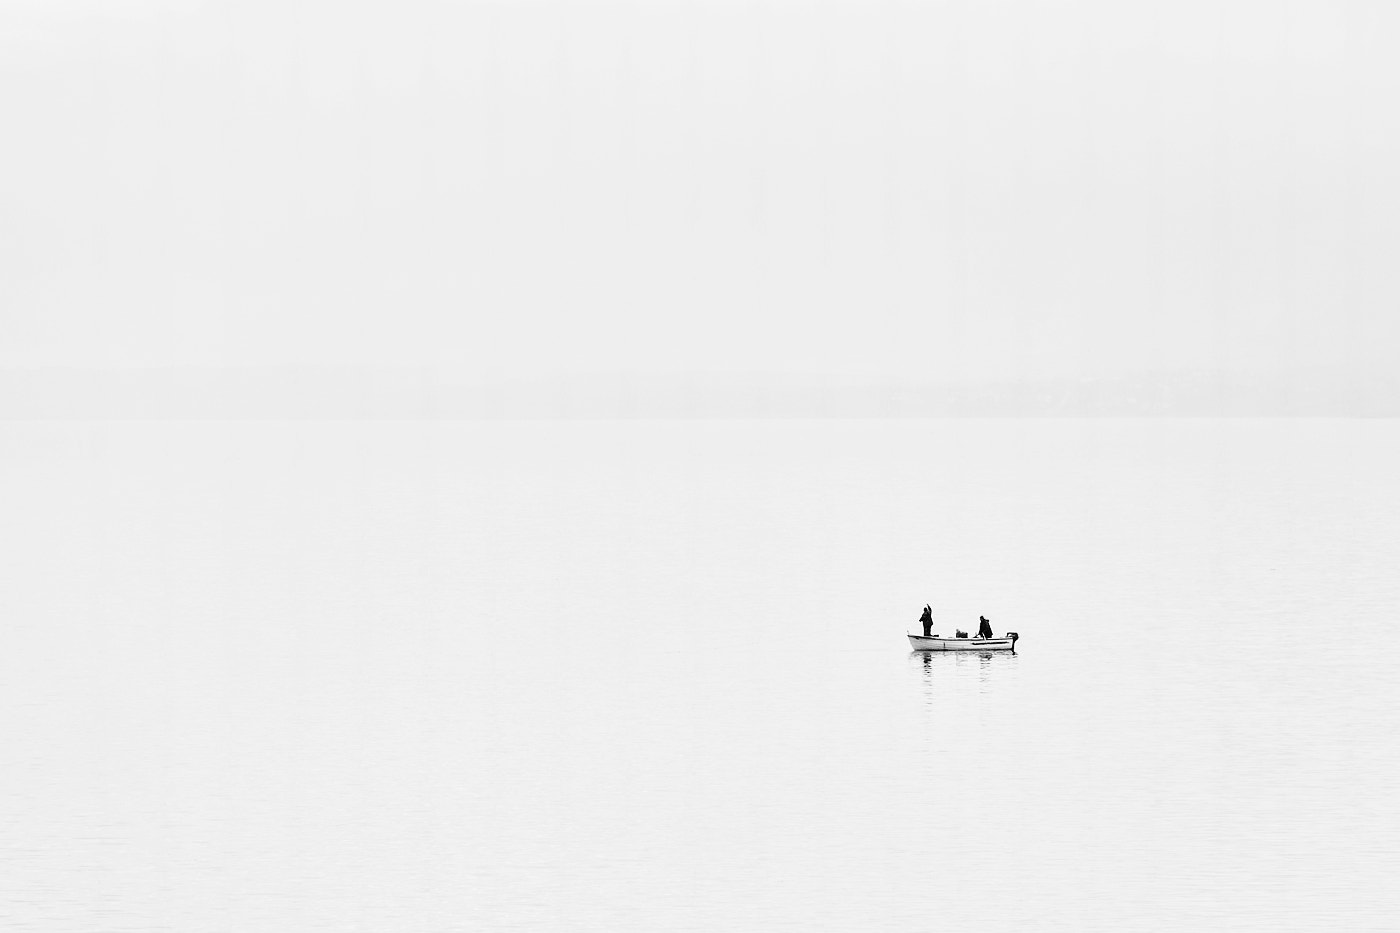 Photograph Minimal boat by Nikos Koutoulas on 500px